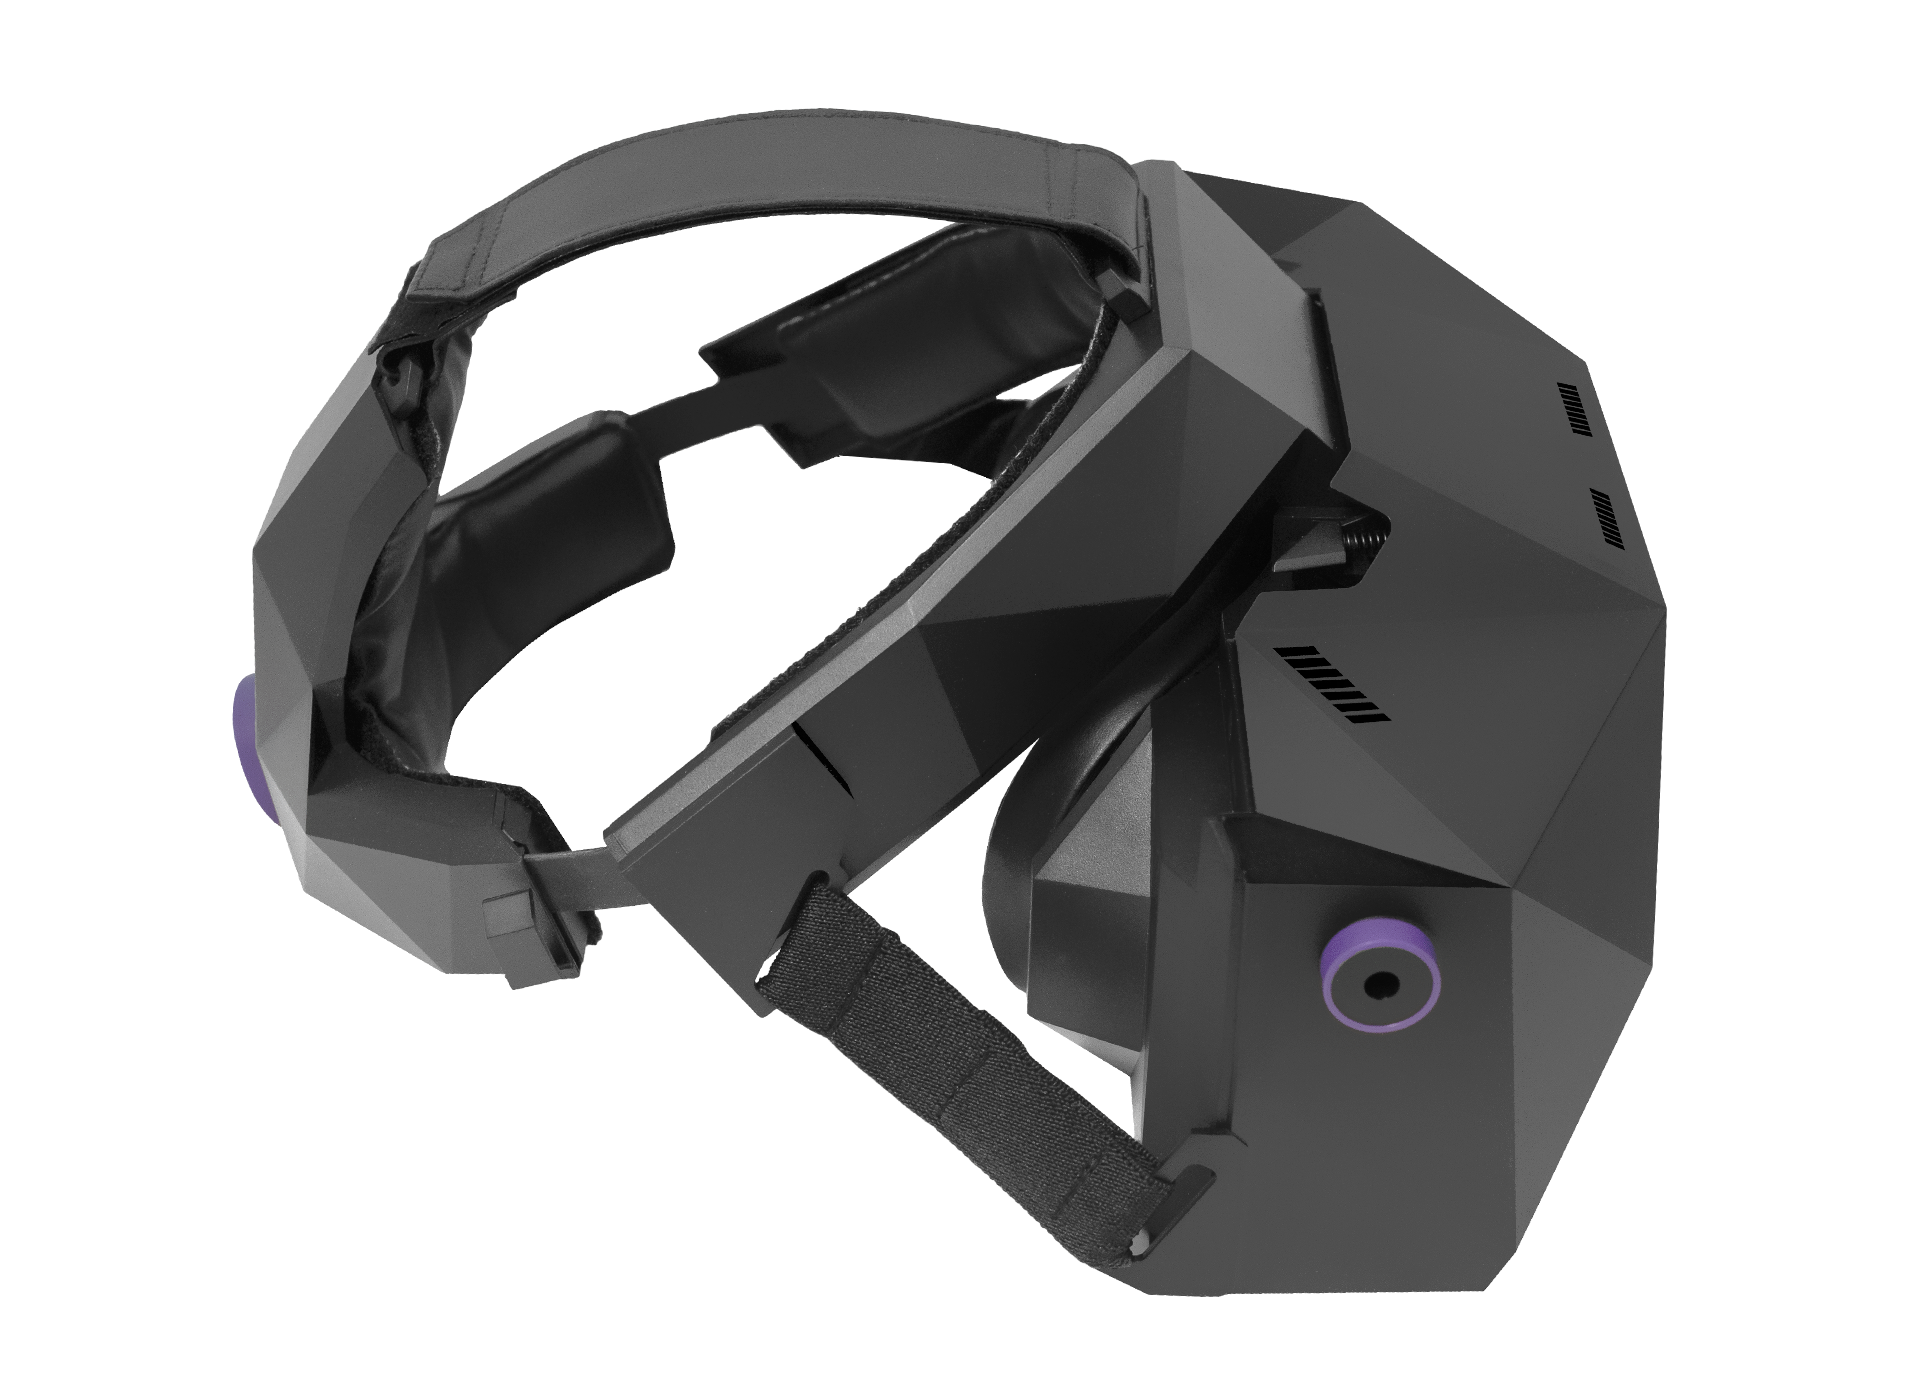 XTAL 8K professional VR headset right side view